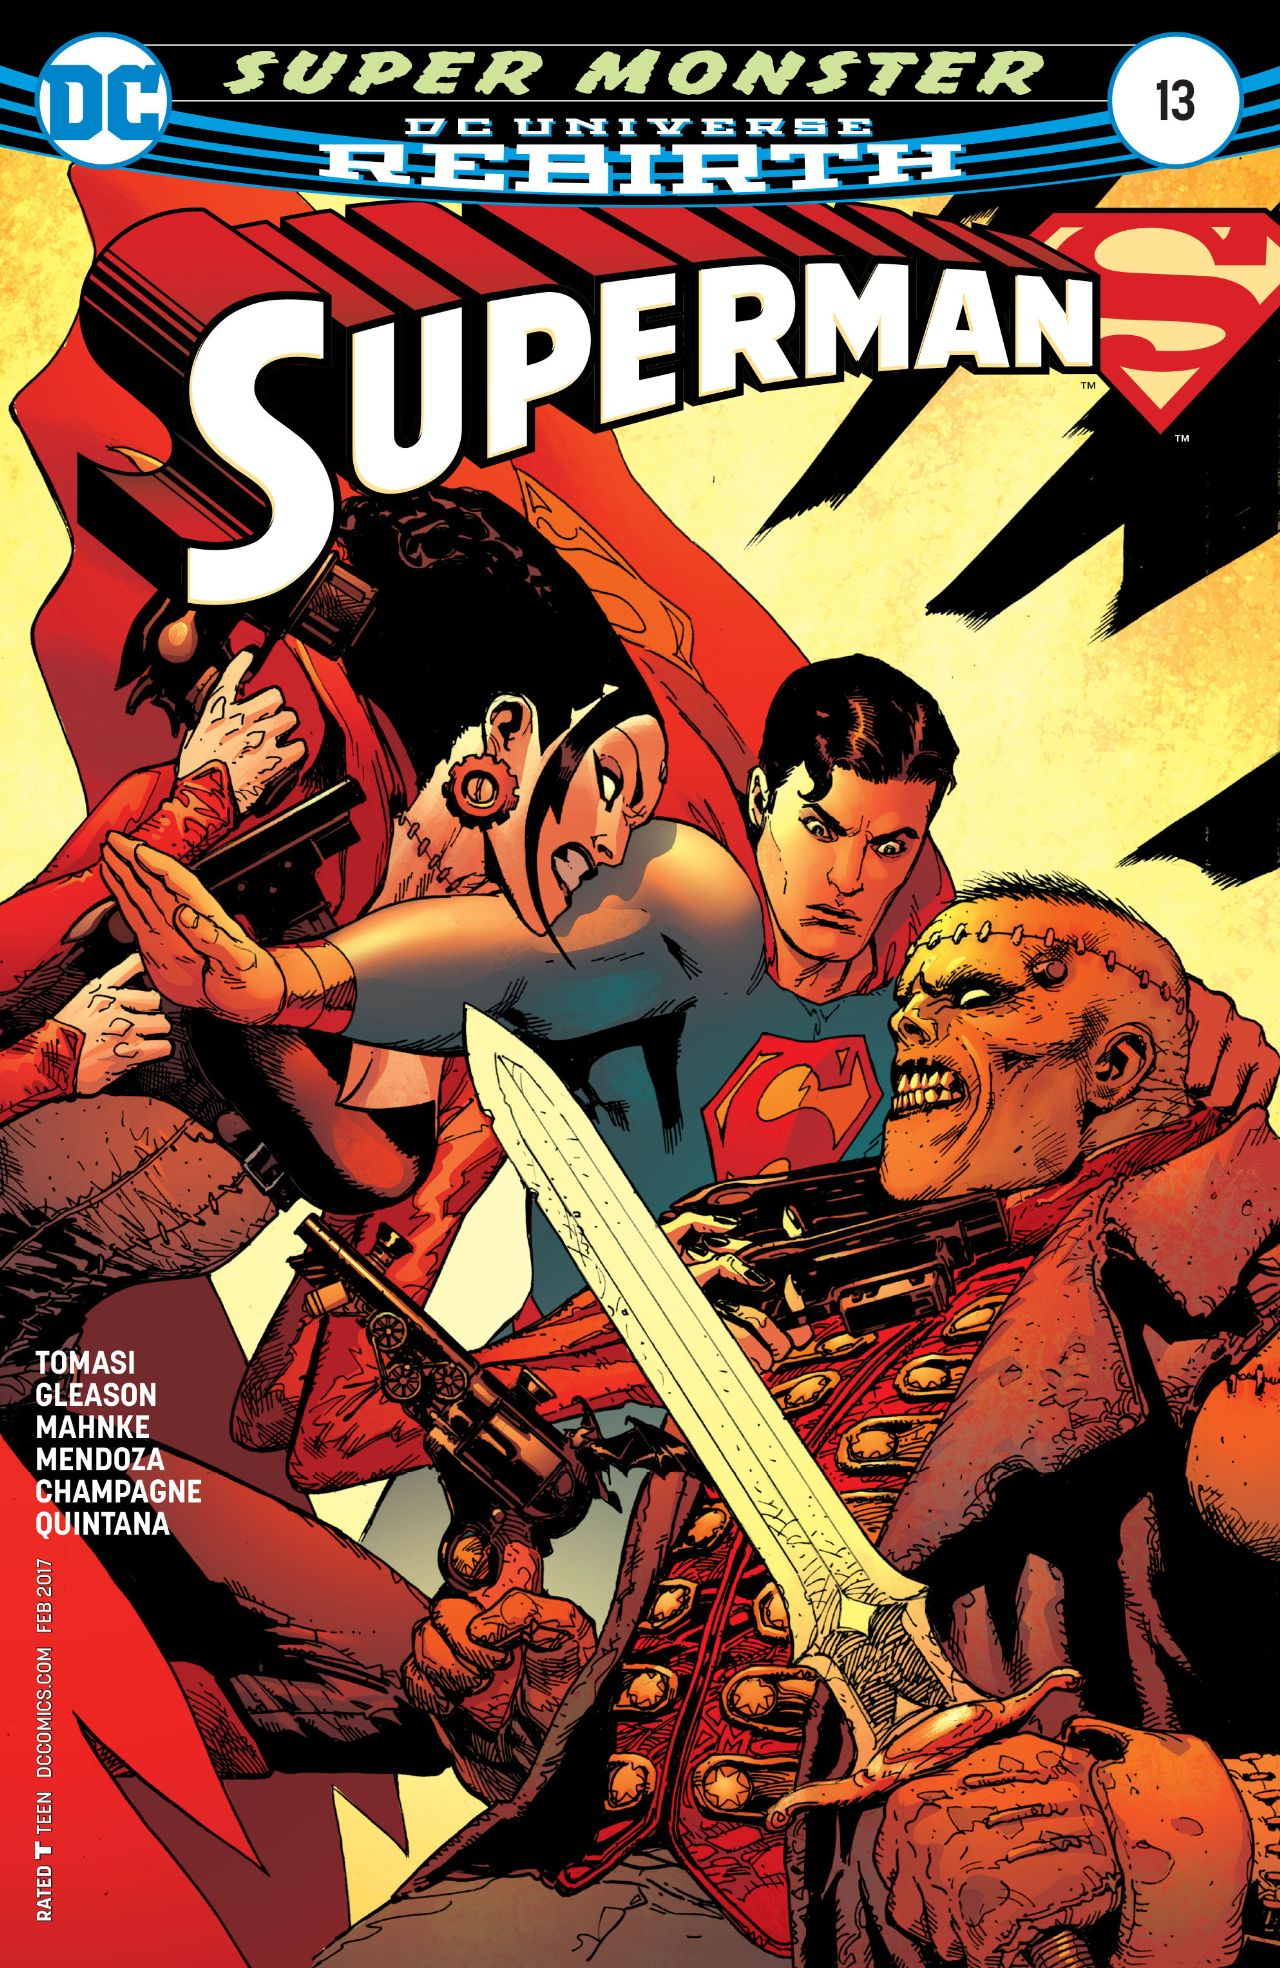 Superman #13 Review